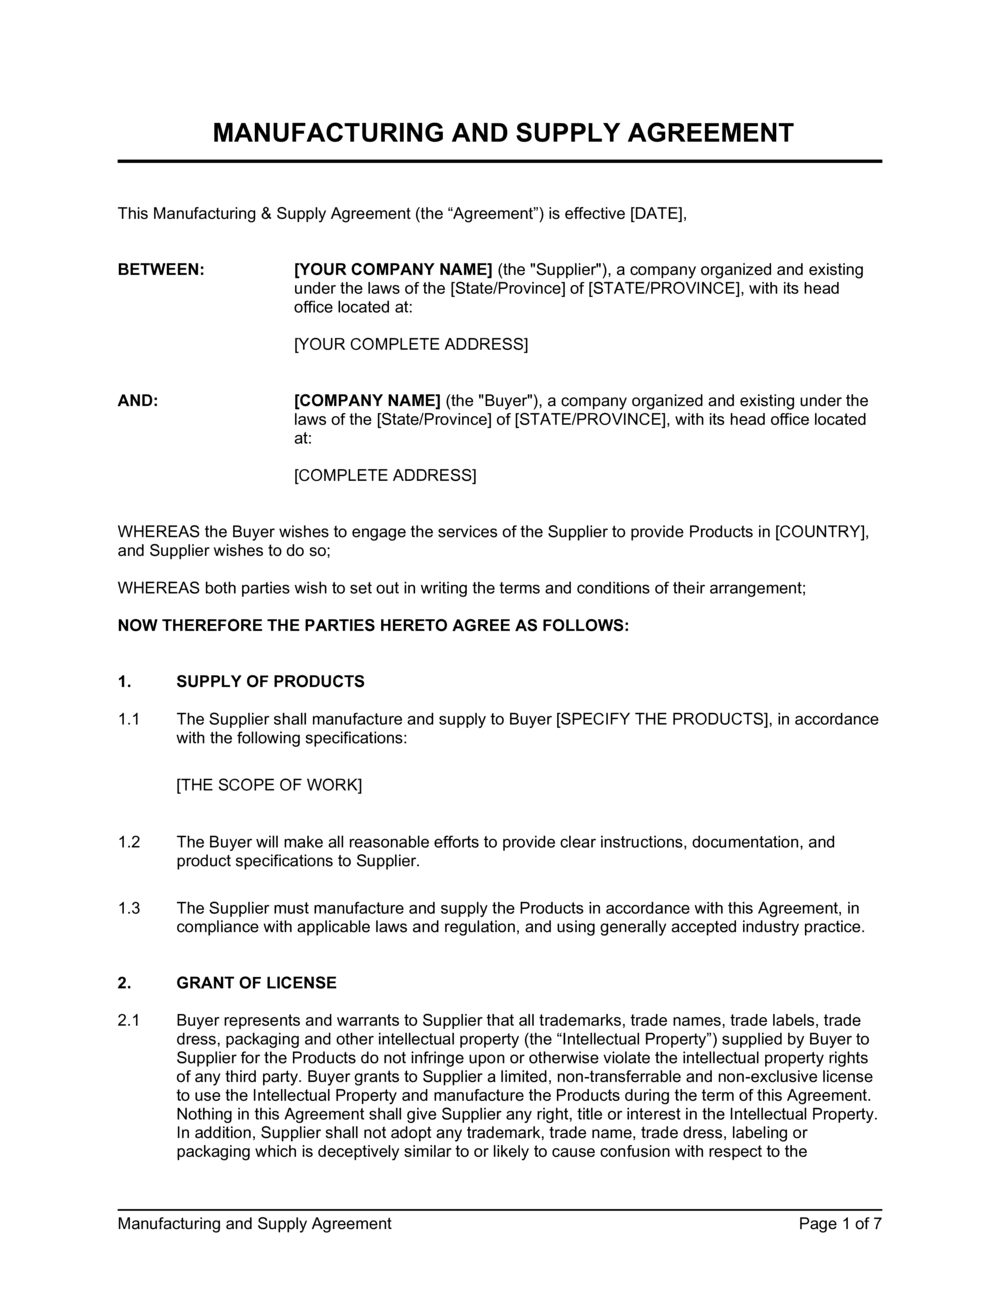 Business-in-a-Box's Manufacturing and Supply Agreement Template